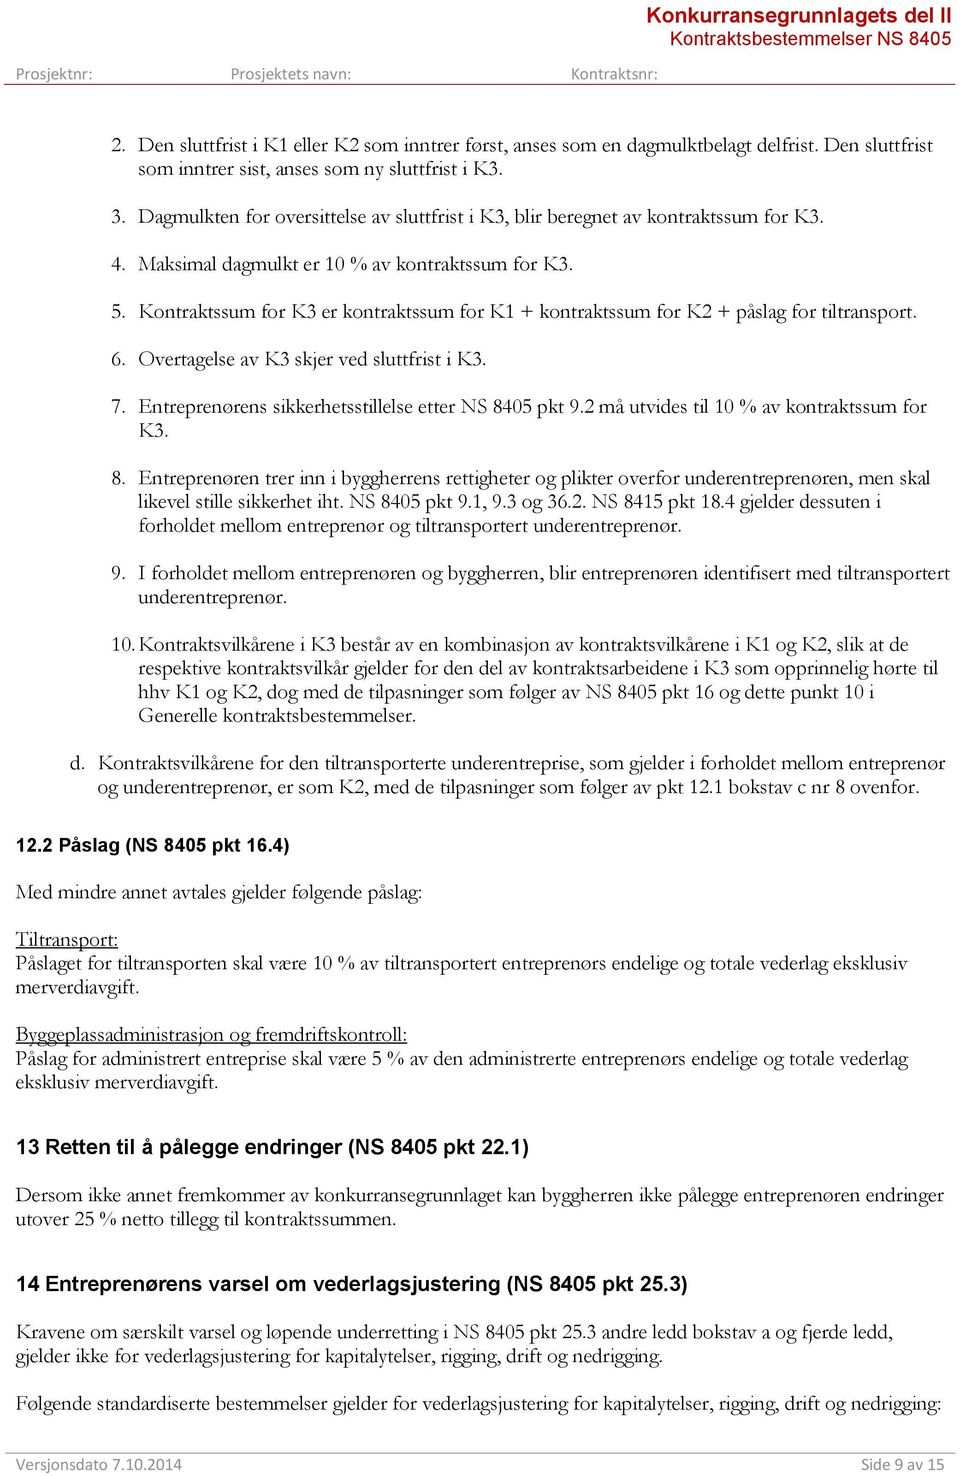 Maksimal dagmulkt er 10 % av kontraktssum for K3. 5. Kontraktssum for K3 er kontraktssum for K1 + kontraktssum for K2 + påslag for tiltransport. 6. Overtagelse av K3 skjer ved sluttfrist i K3. 7.